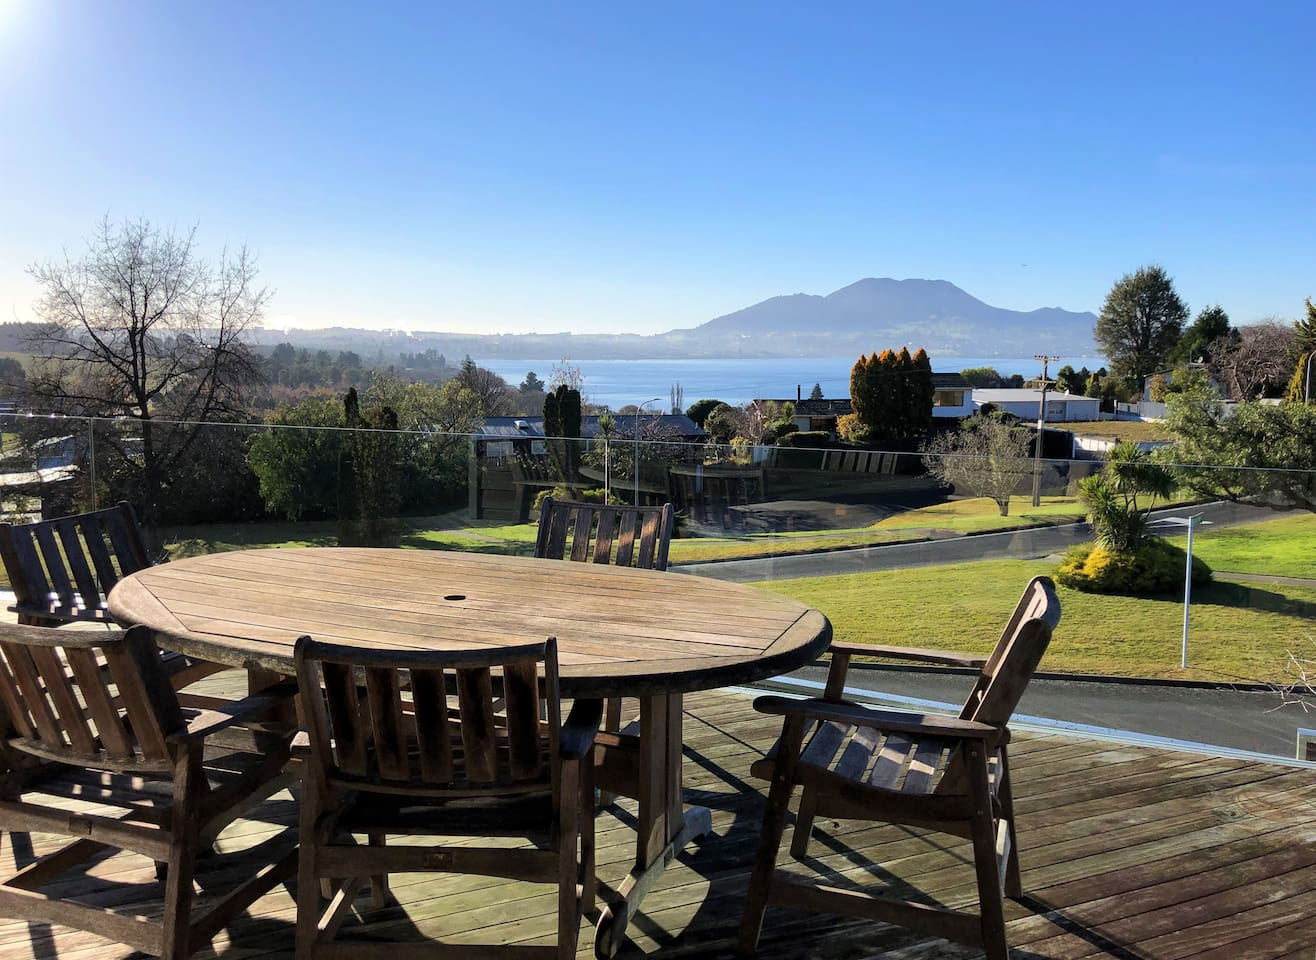 Relax on the sun-soaked deck and take in the beautiful lake and mountain views